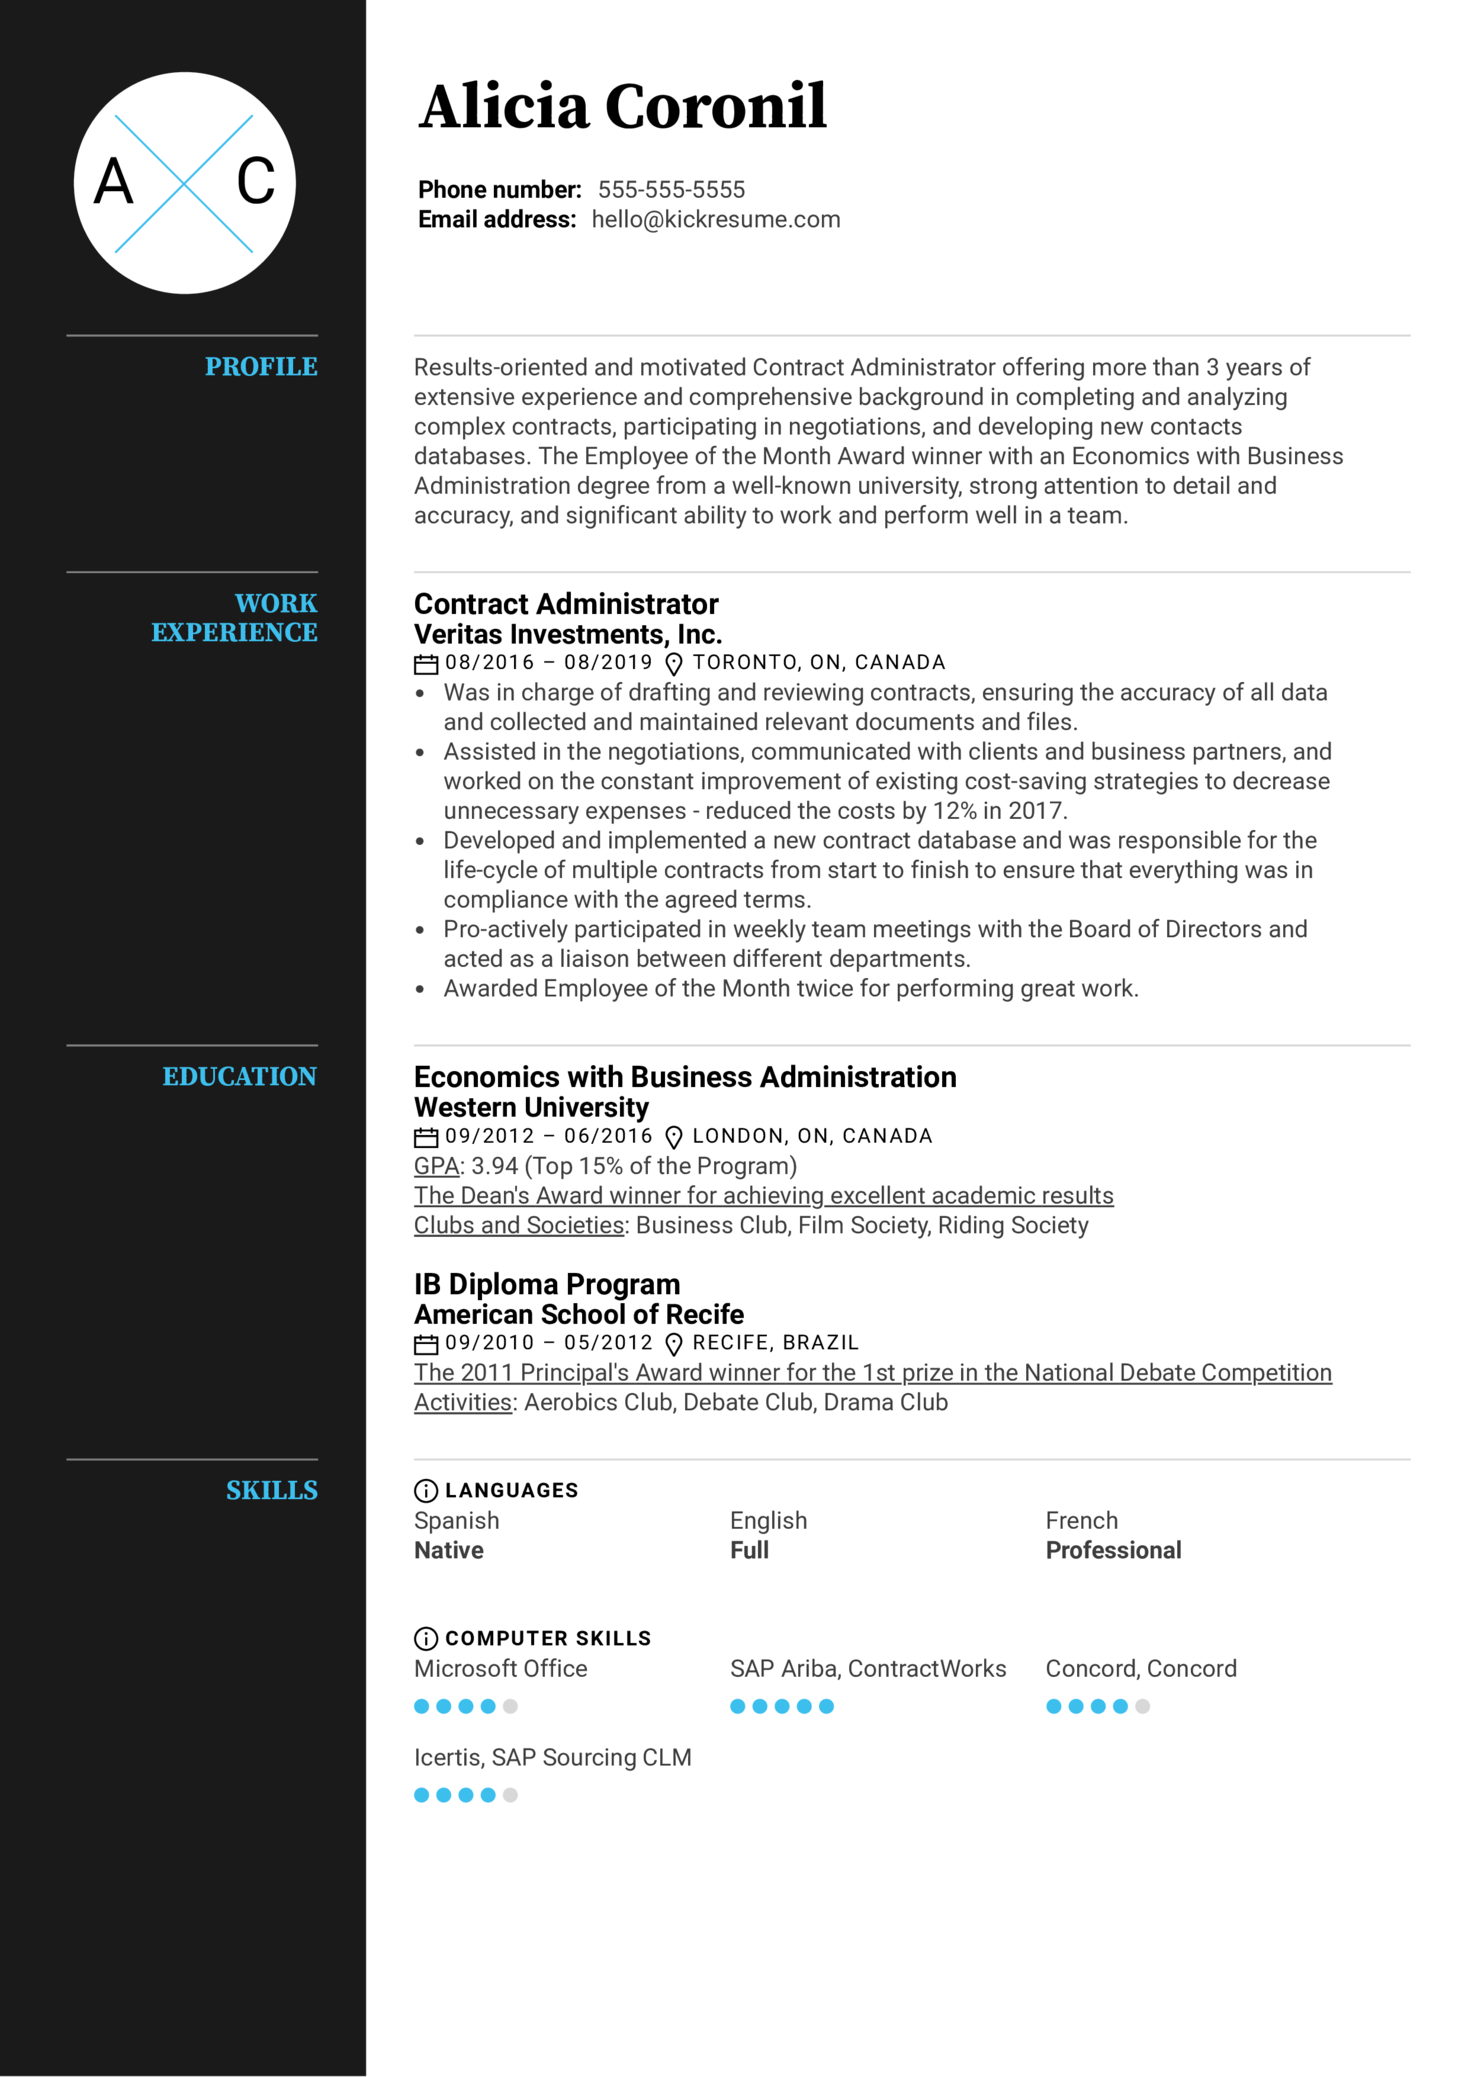 Contract Administrator Resume Example (parte 1)